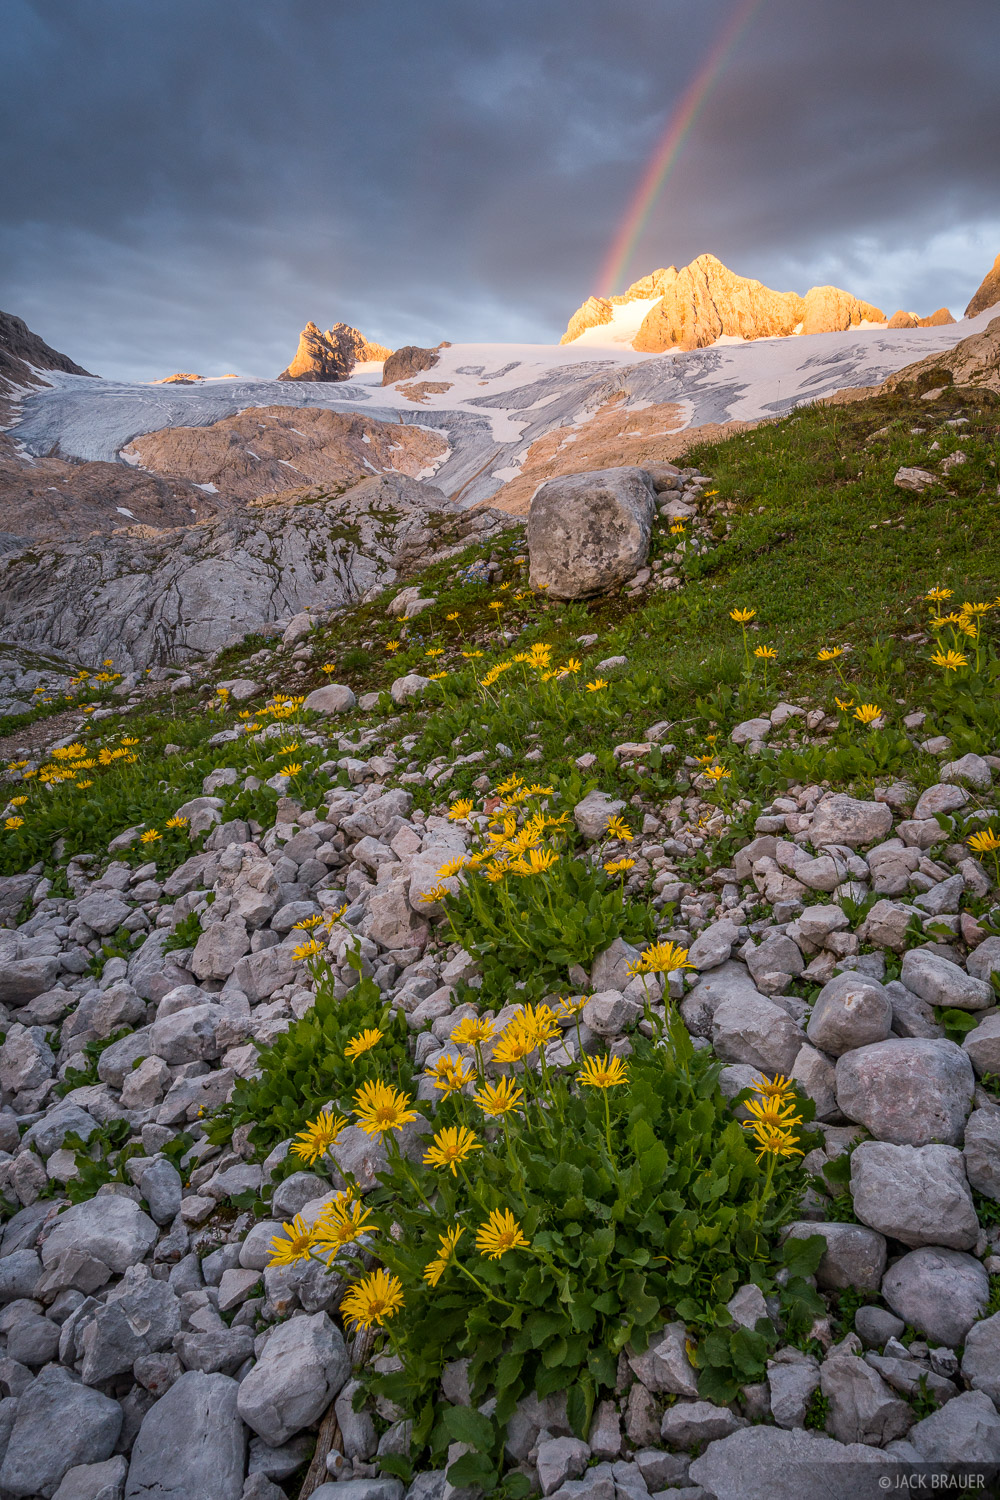 Austria, Dachstein, Hallstätter Gletscher, wildflowers, sunrise, glacier, rainbow, Alps, photo